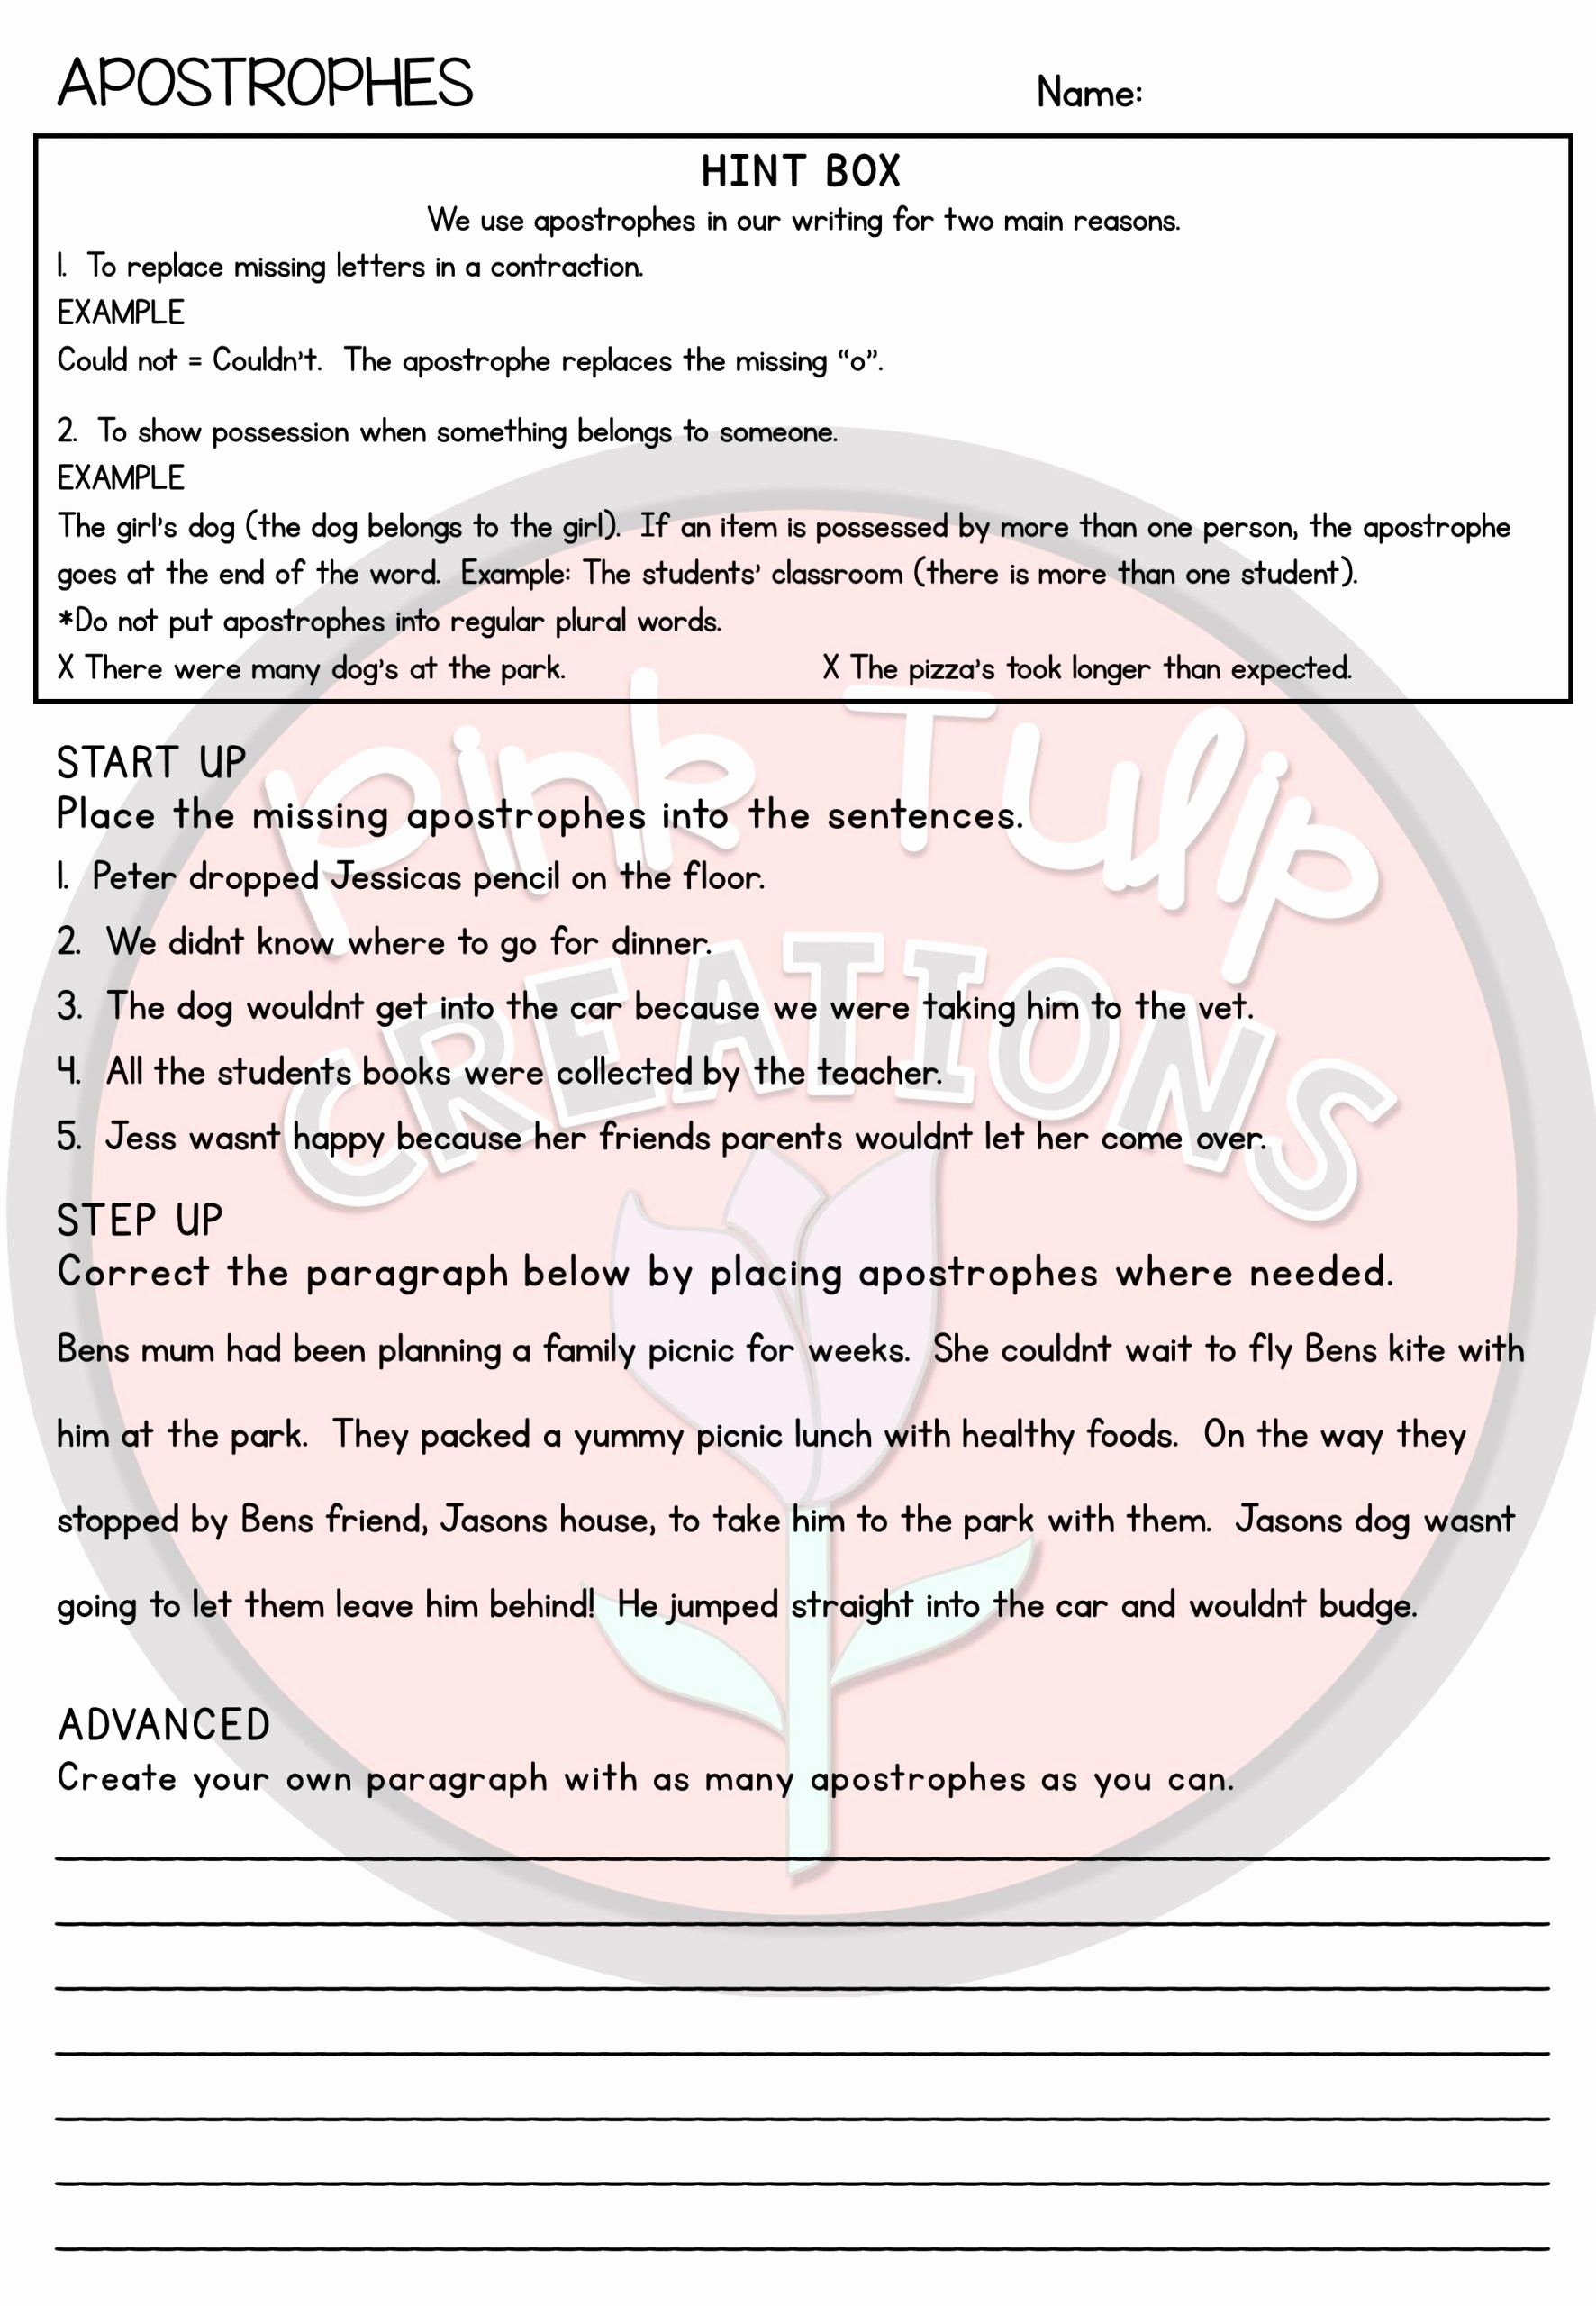 Drawing Conclusions Worksheets 5th Grade top Drawing Conclusions Worksheets 5th Grade Grammar Worksheet